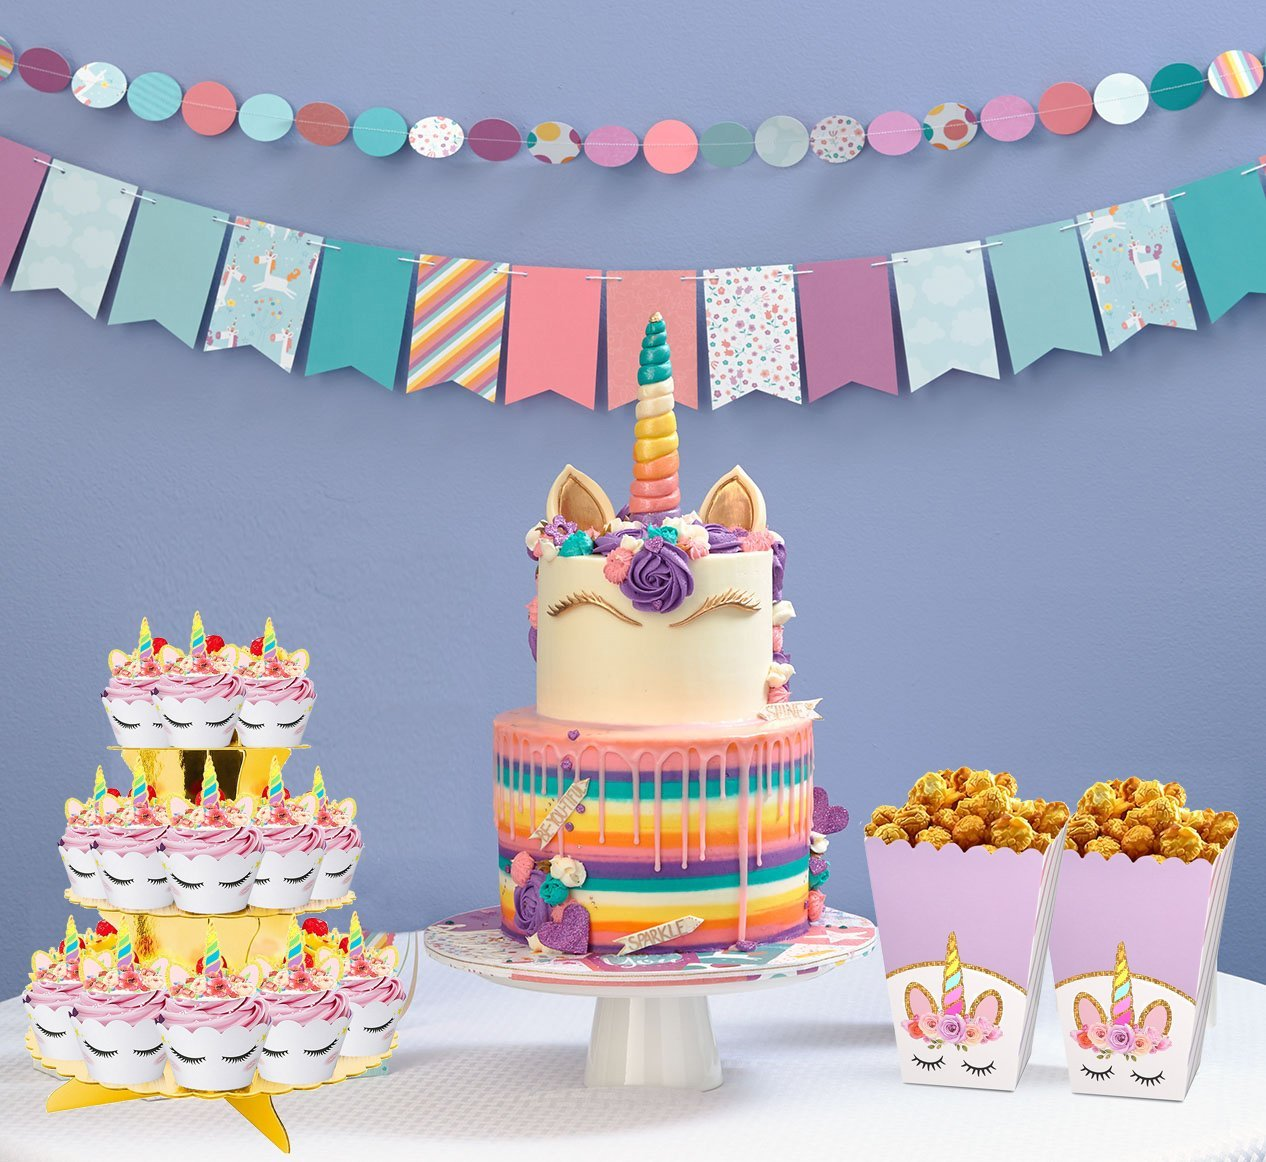 Rainbow Unicorn Cupcake Toppers and Wrappers w BONUS Gold Cupcake Stand - Themed Glitter Horn Cake Topper + Rainbow Wrapper DIY Baking Decorations Kit, Kids Birthday Party Supplies Accessories| 48pcs by Quality Party Supplies (Image #5)